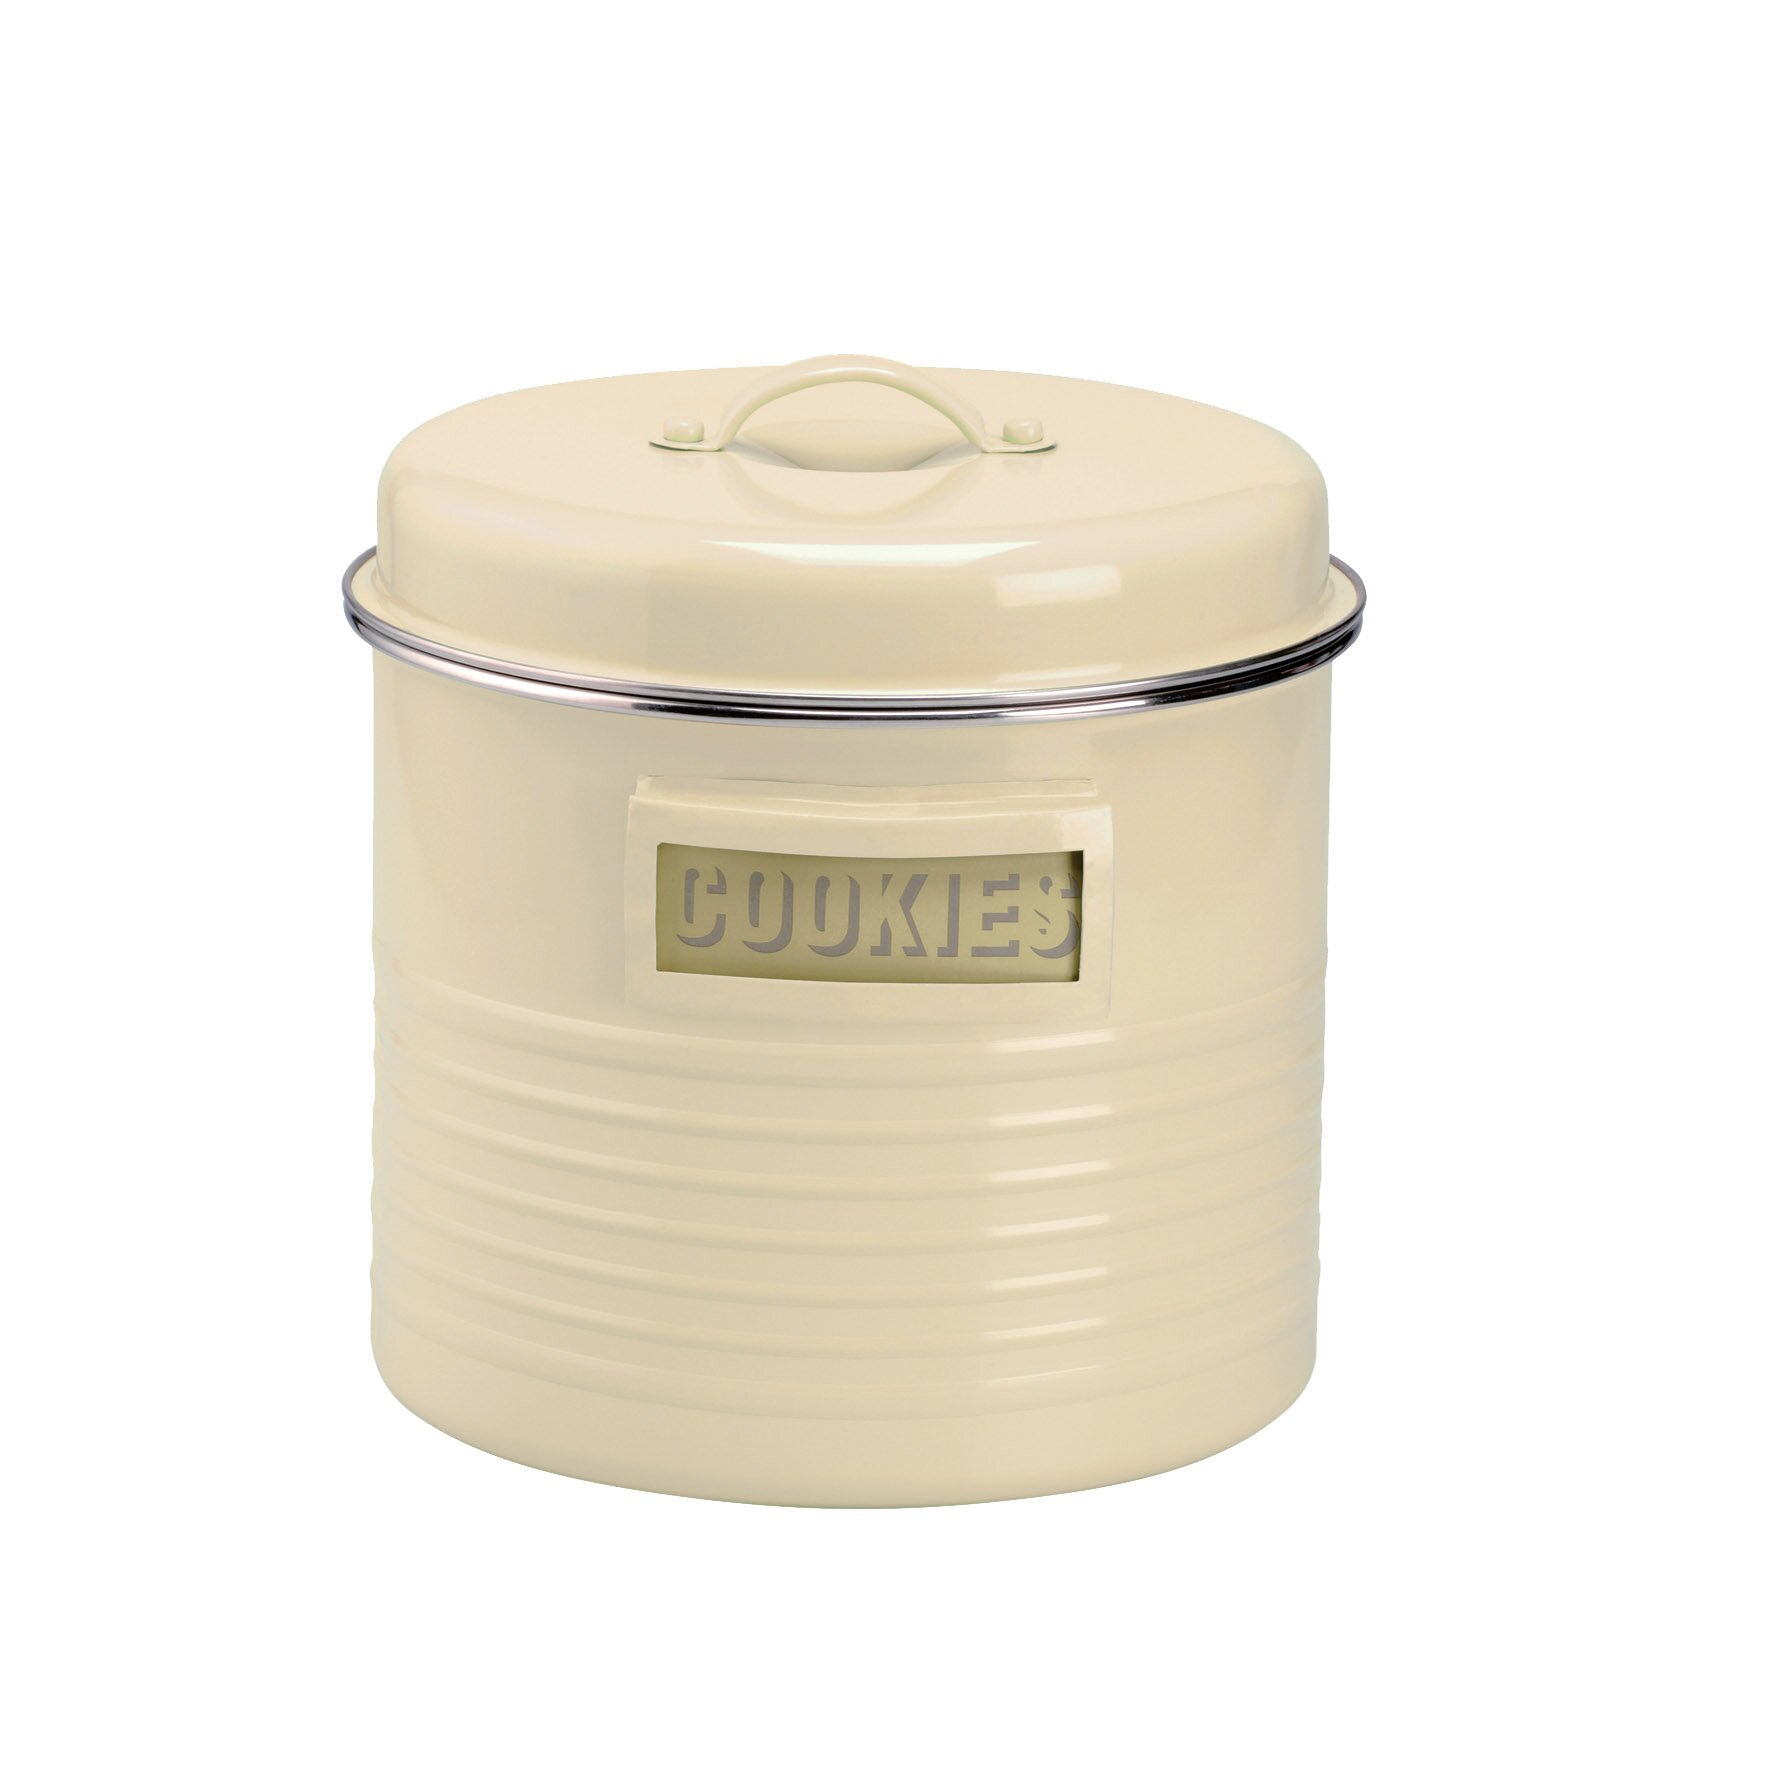 typhoon vintage kitchen storage canister reviews